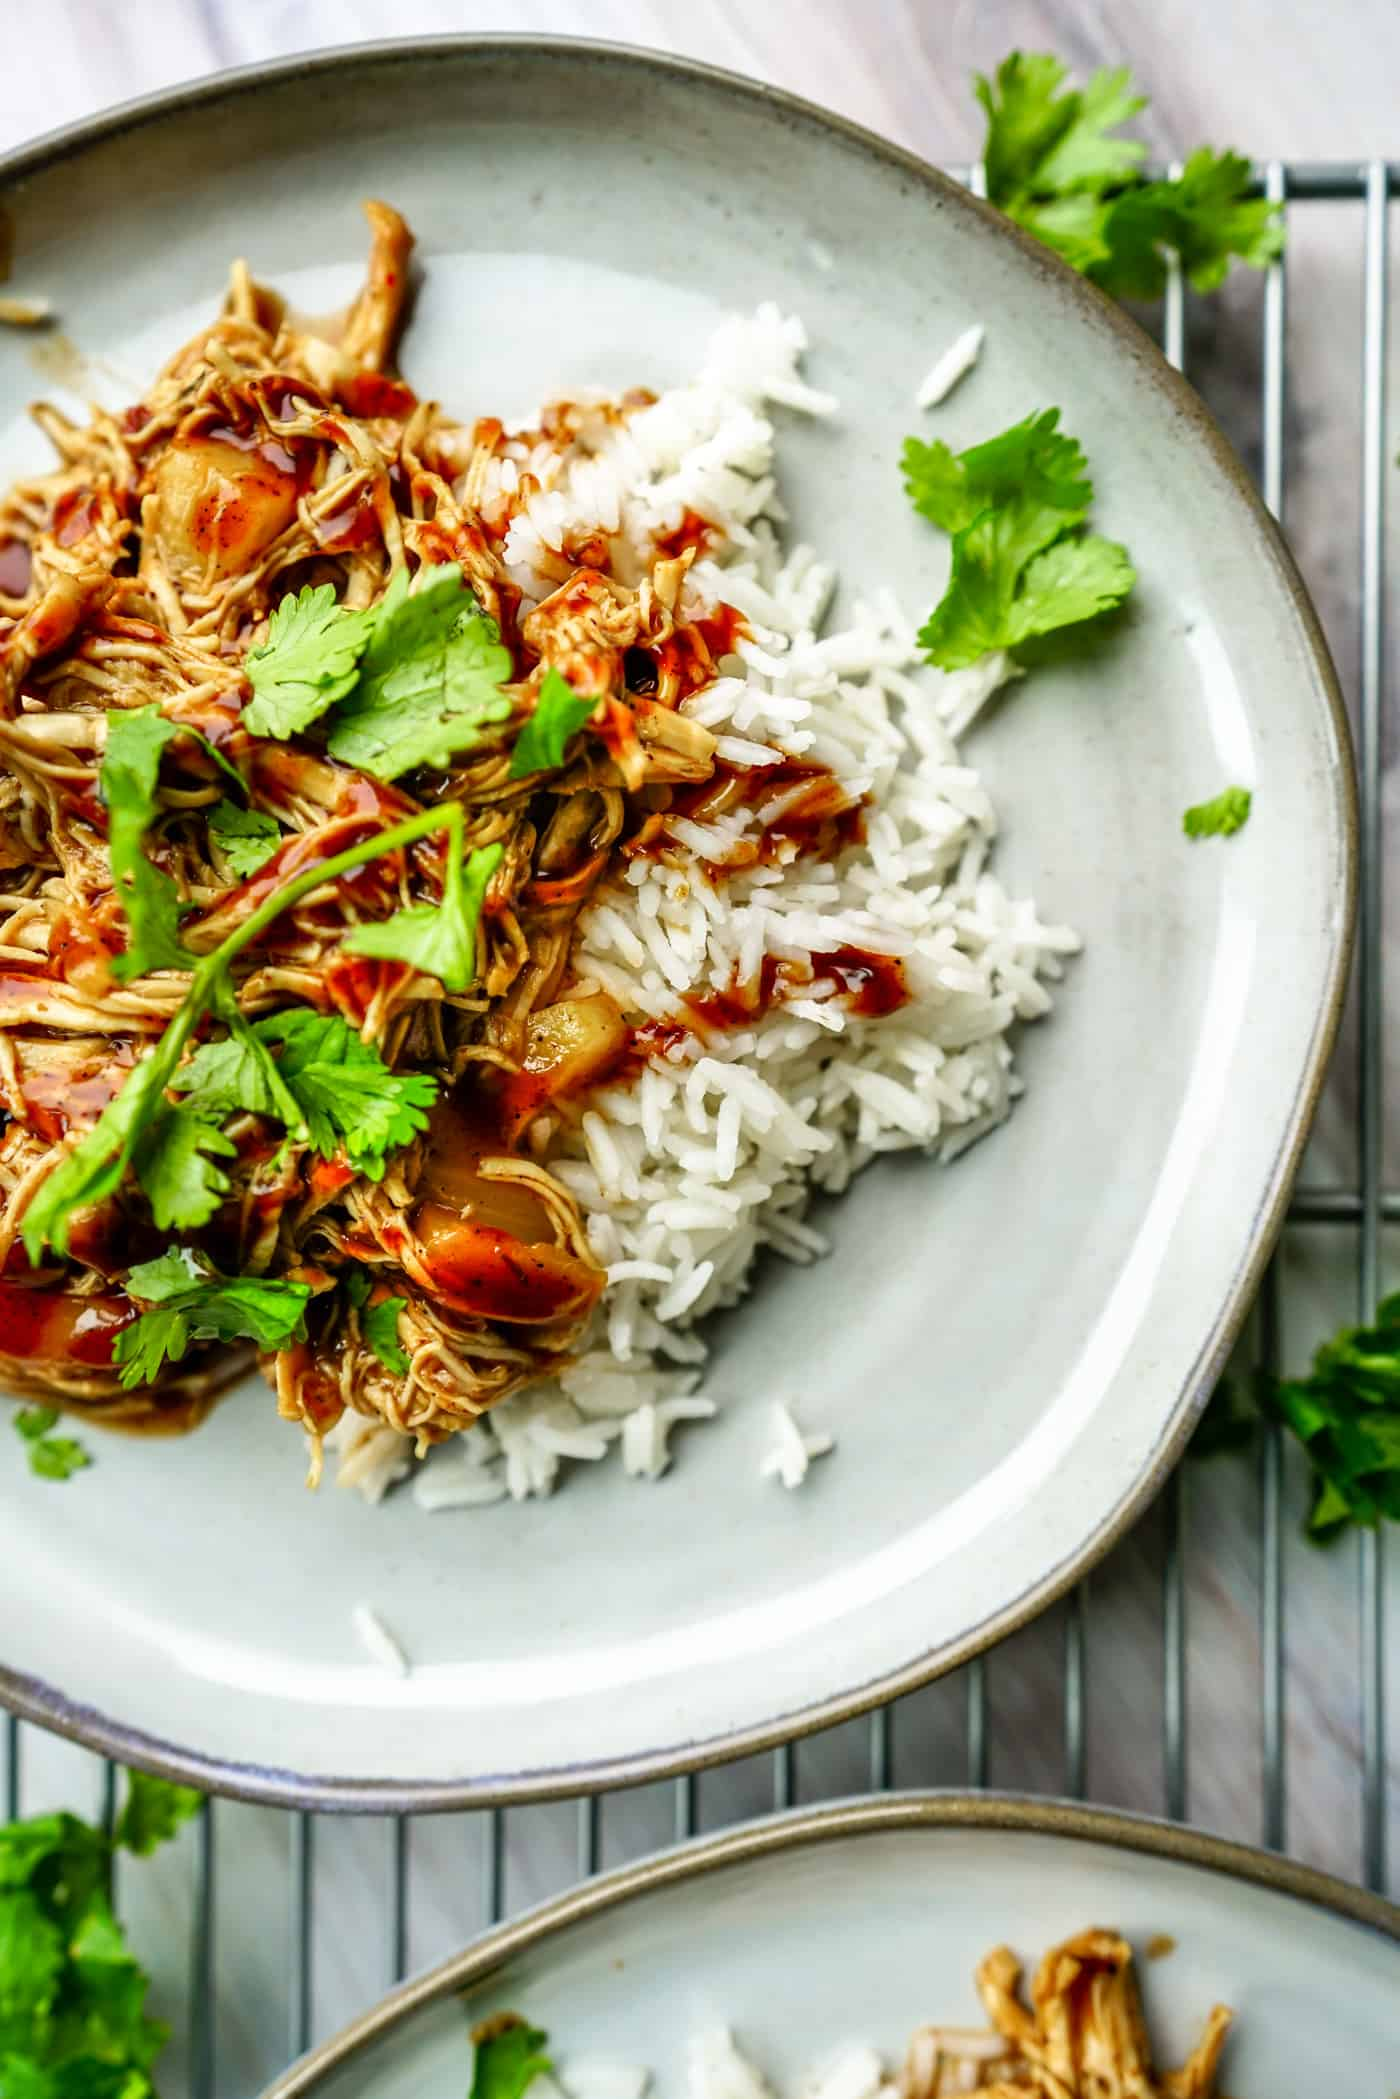 INSTANT POT JERK CHICKEN – Need a great Instant Pot chicken recipe to make tonight? This Instant Pot Jerk Chicken recipe is a great choice for everyone in your family. Serve this Instant Pot Jerk chicken with rice, on tacos, on sliders and so much more! #instantpotchicken #instantpotrecipe #jerkchicken #weeknightmeal #easydinnerrecipe